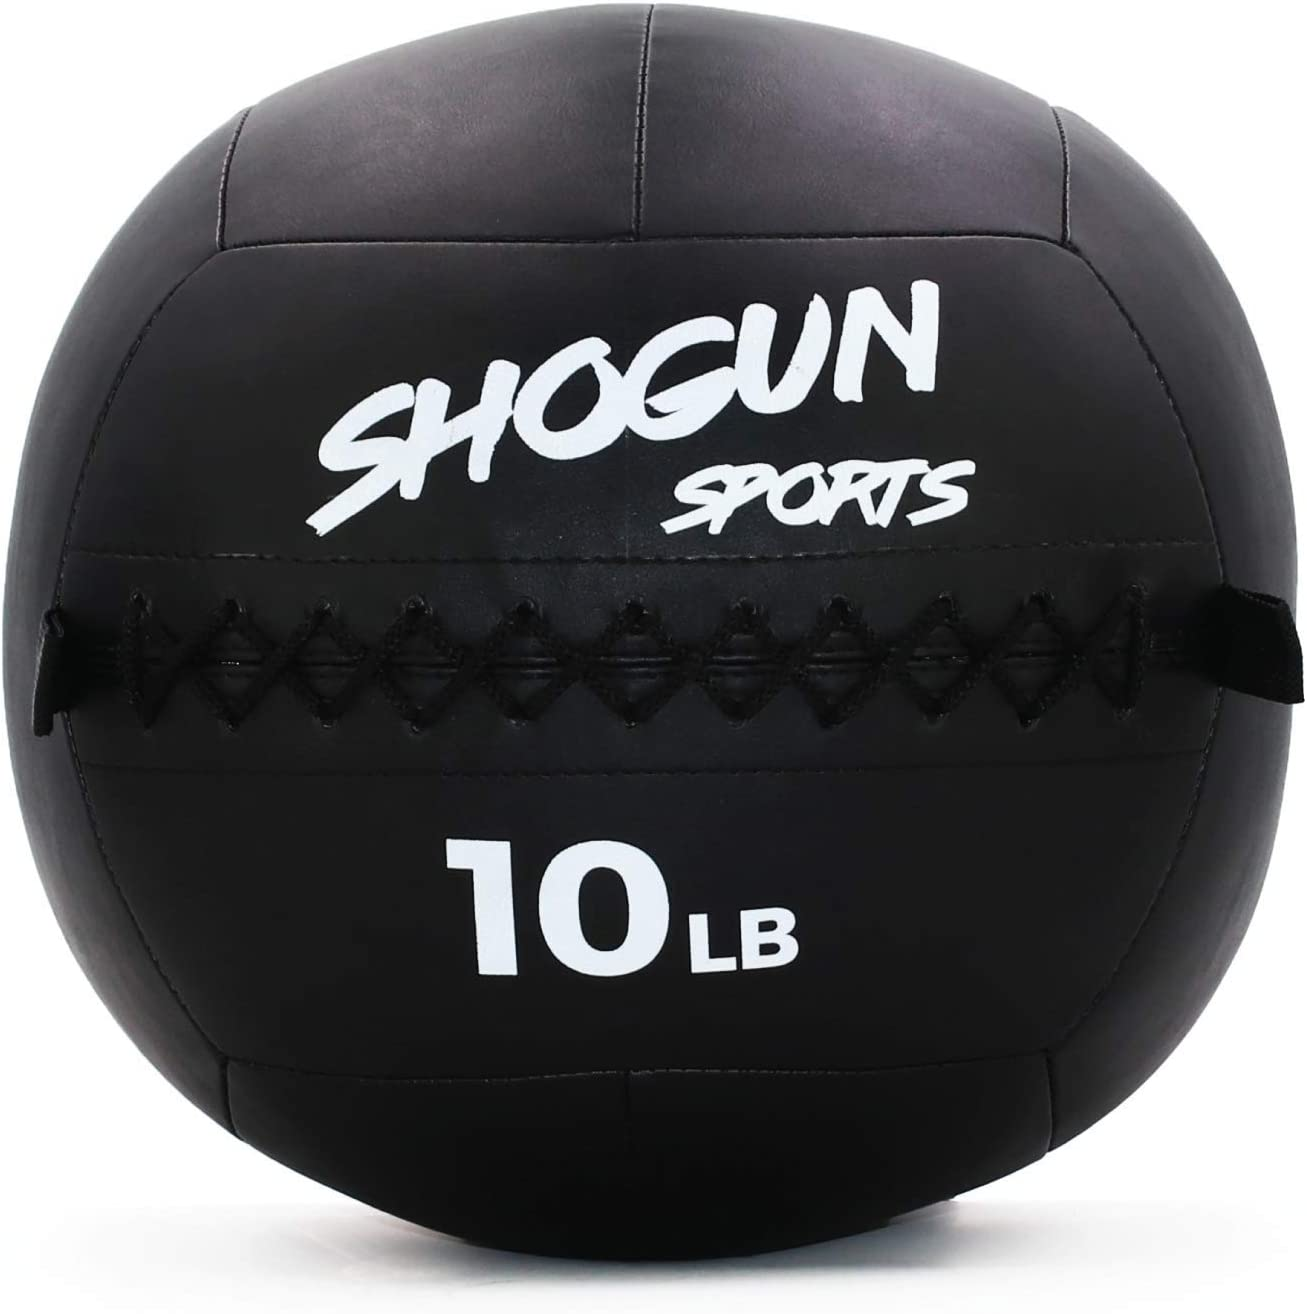 Shogun Sports Soft Wall Ball. Durable Medicine Ball for Strength, Conditioning, Cardio and Cross Training. Ideal for Wall Balls, Lunges, Partner Toss, Twists. Available in 10, 14, 20 LB